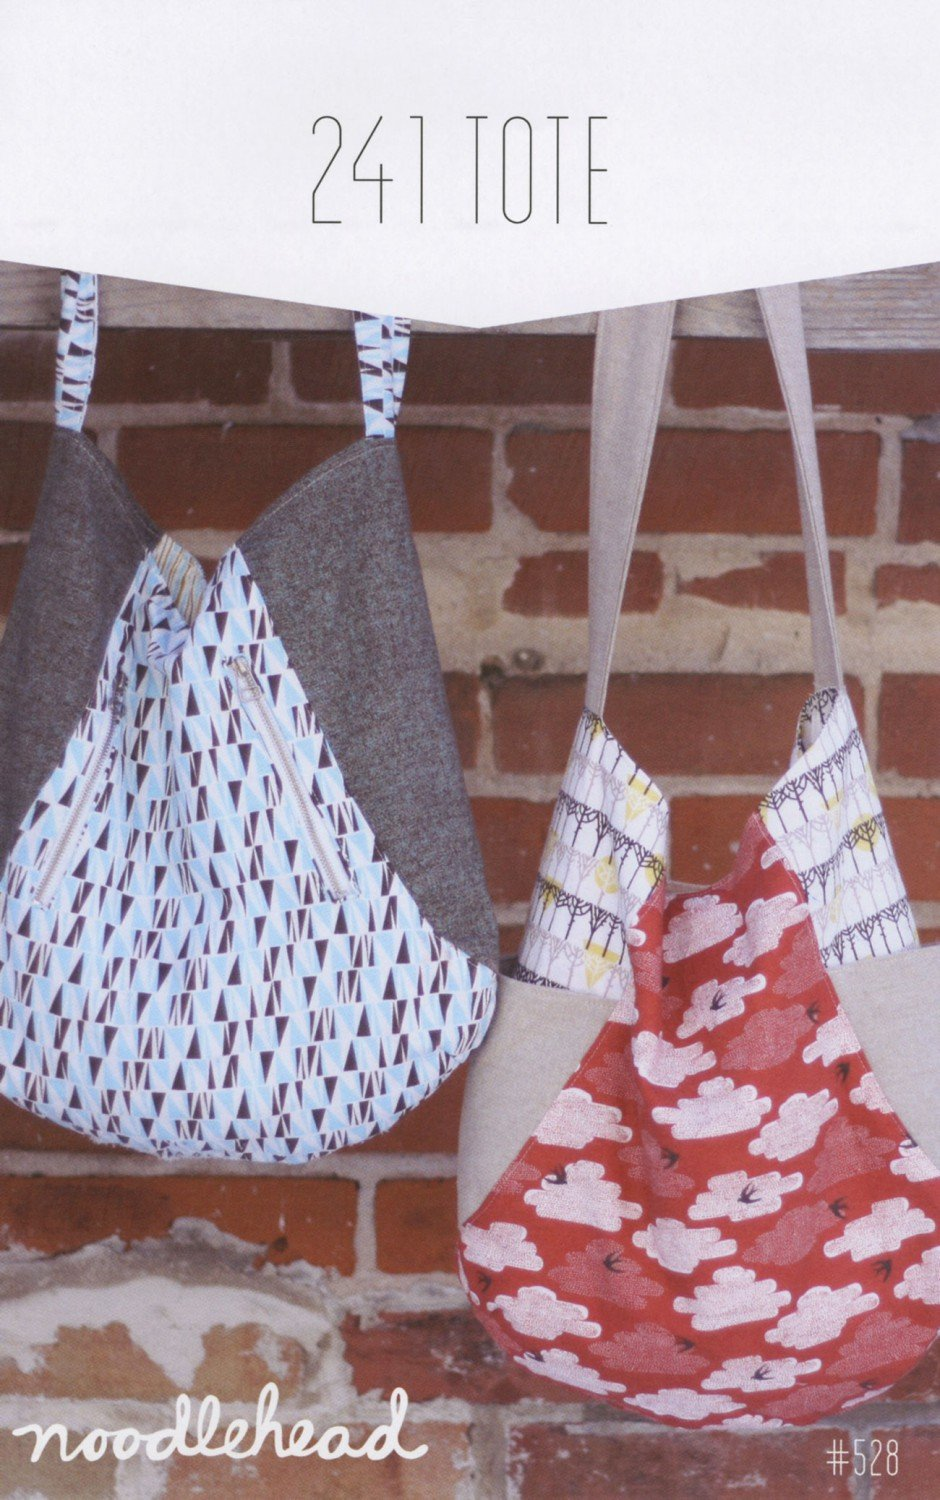 241 Tote Pattern by Noodlehead